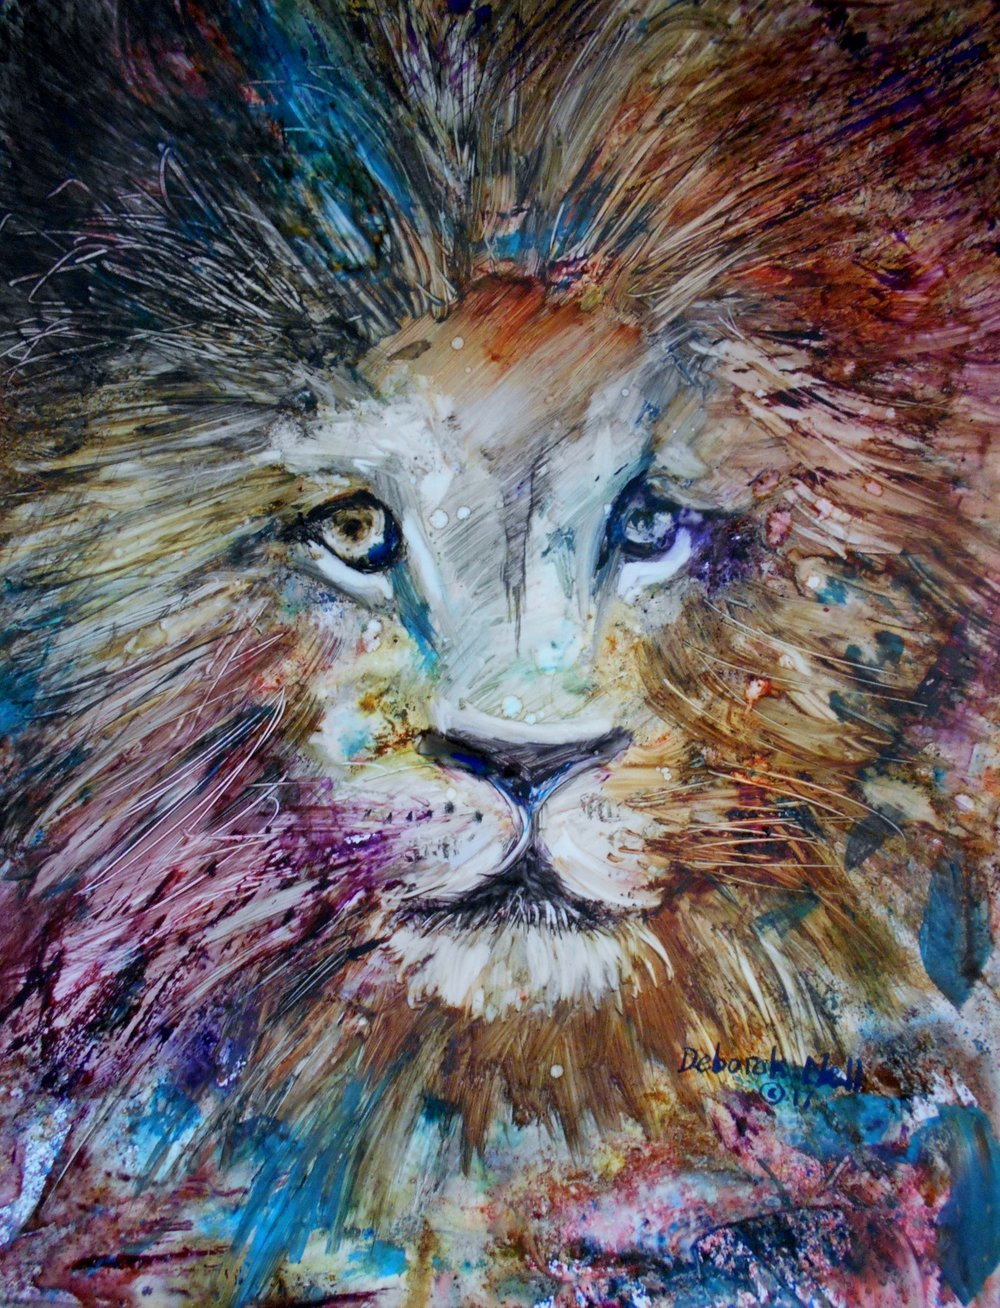 The Lion - My finished painting of the lion I saw in the vision.